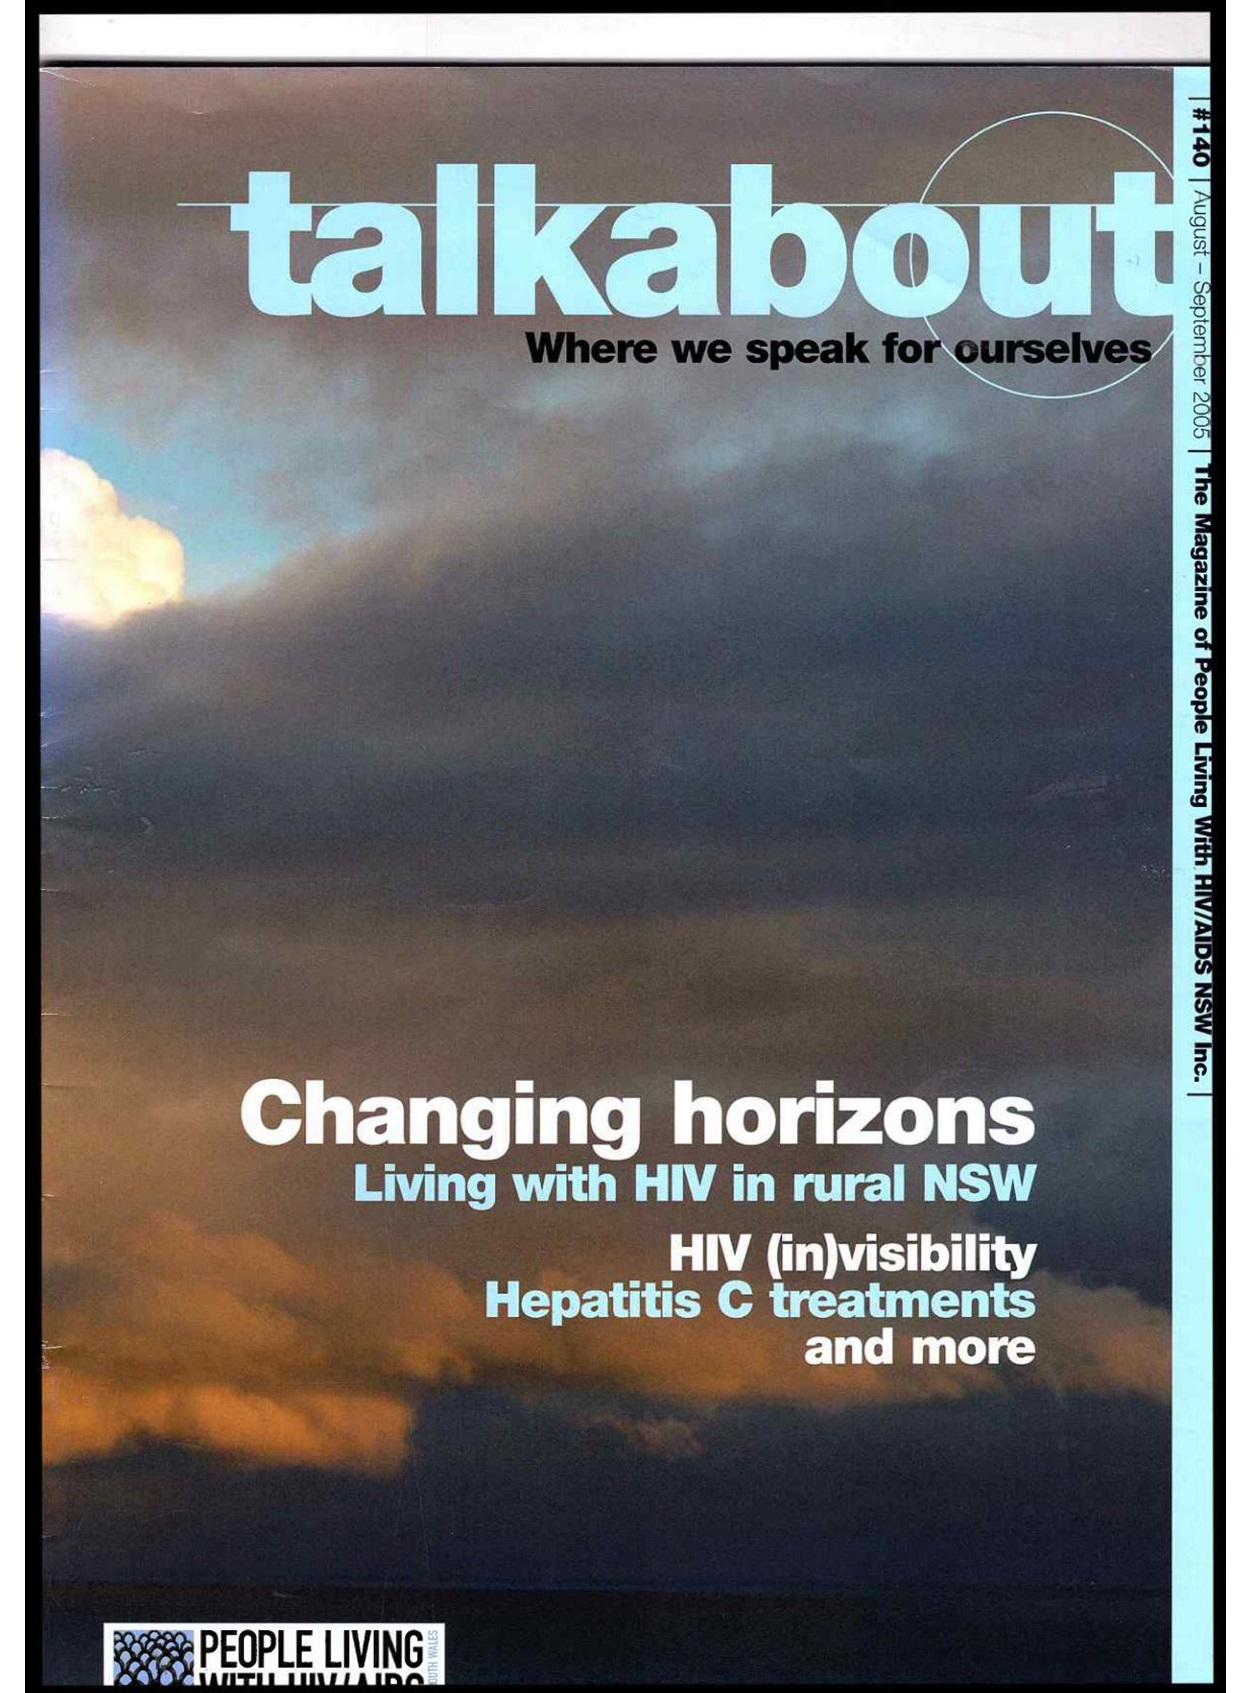 Talkabout Edition #140